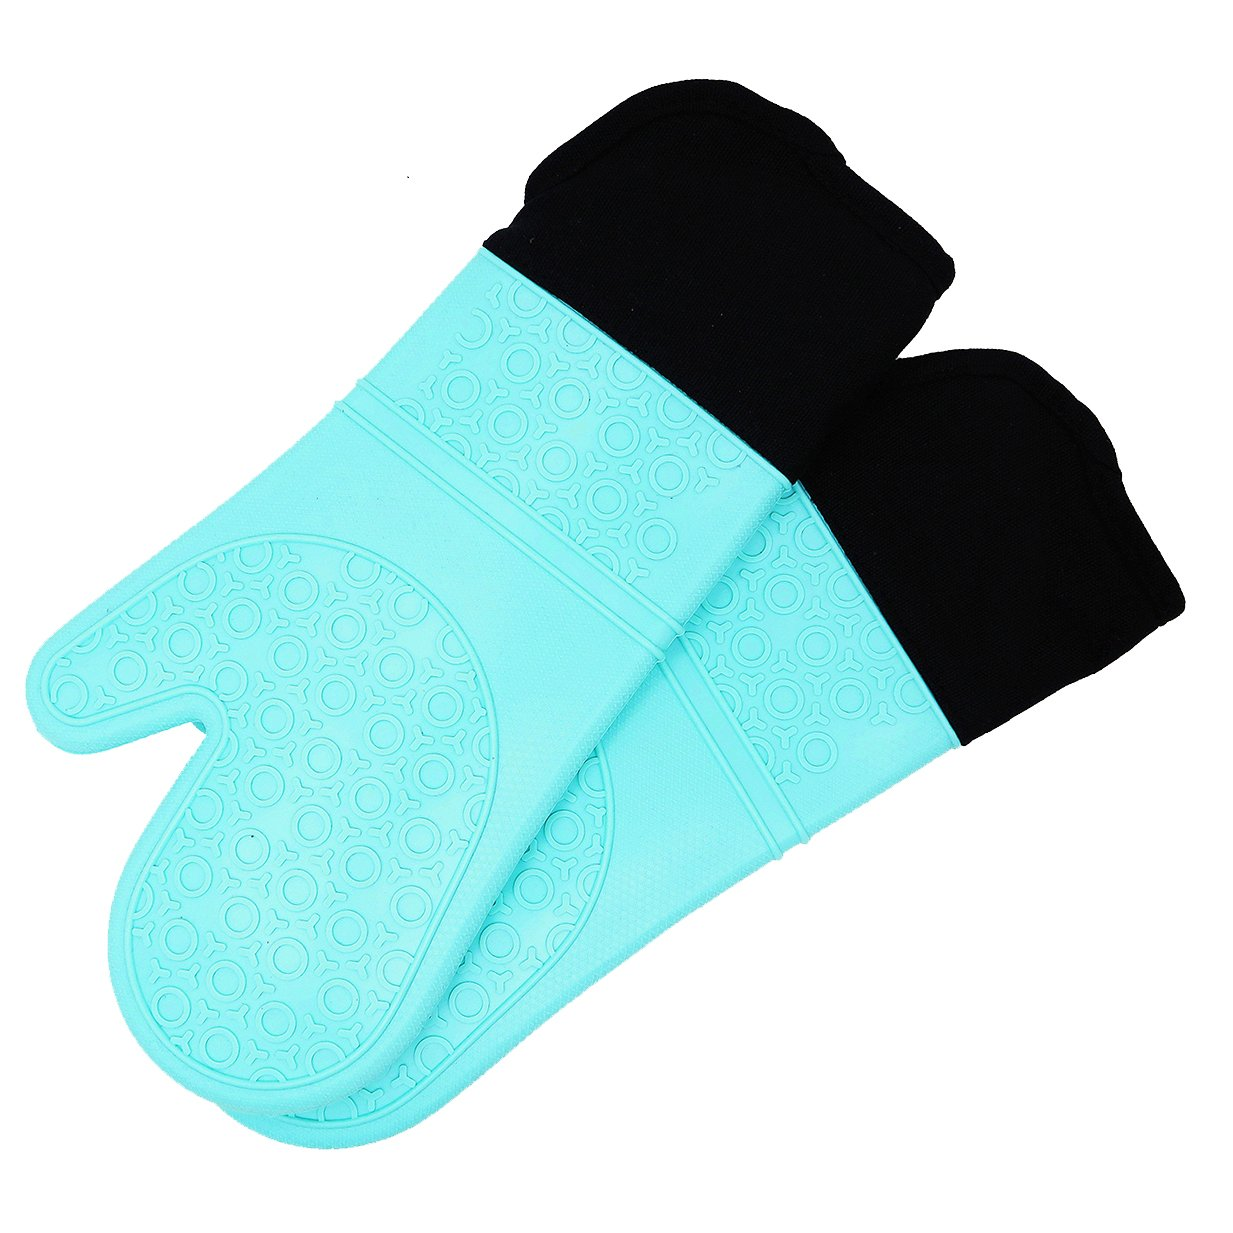 Silicone Oven Mitts with Quilted Cotton Lining